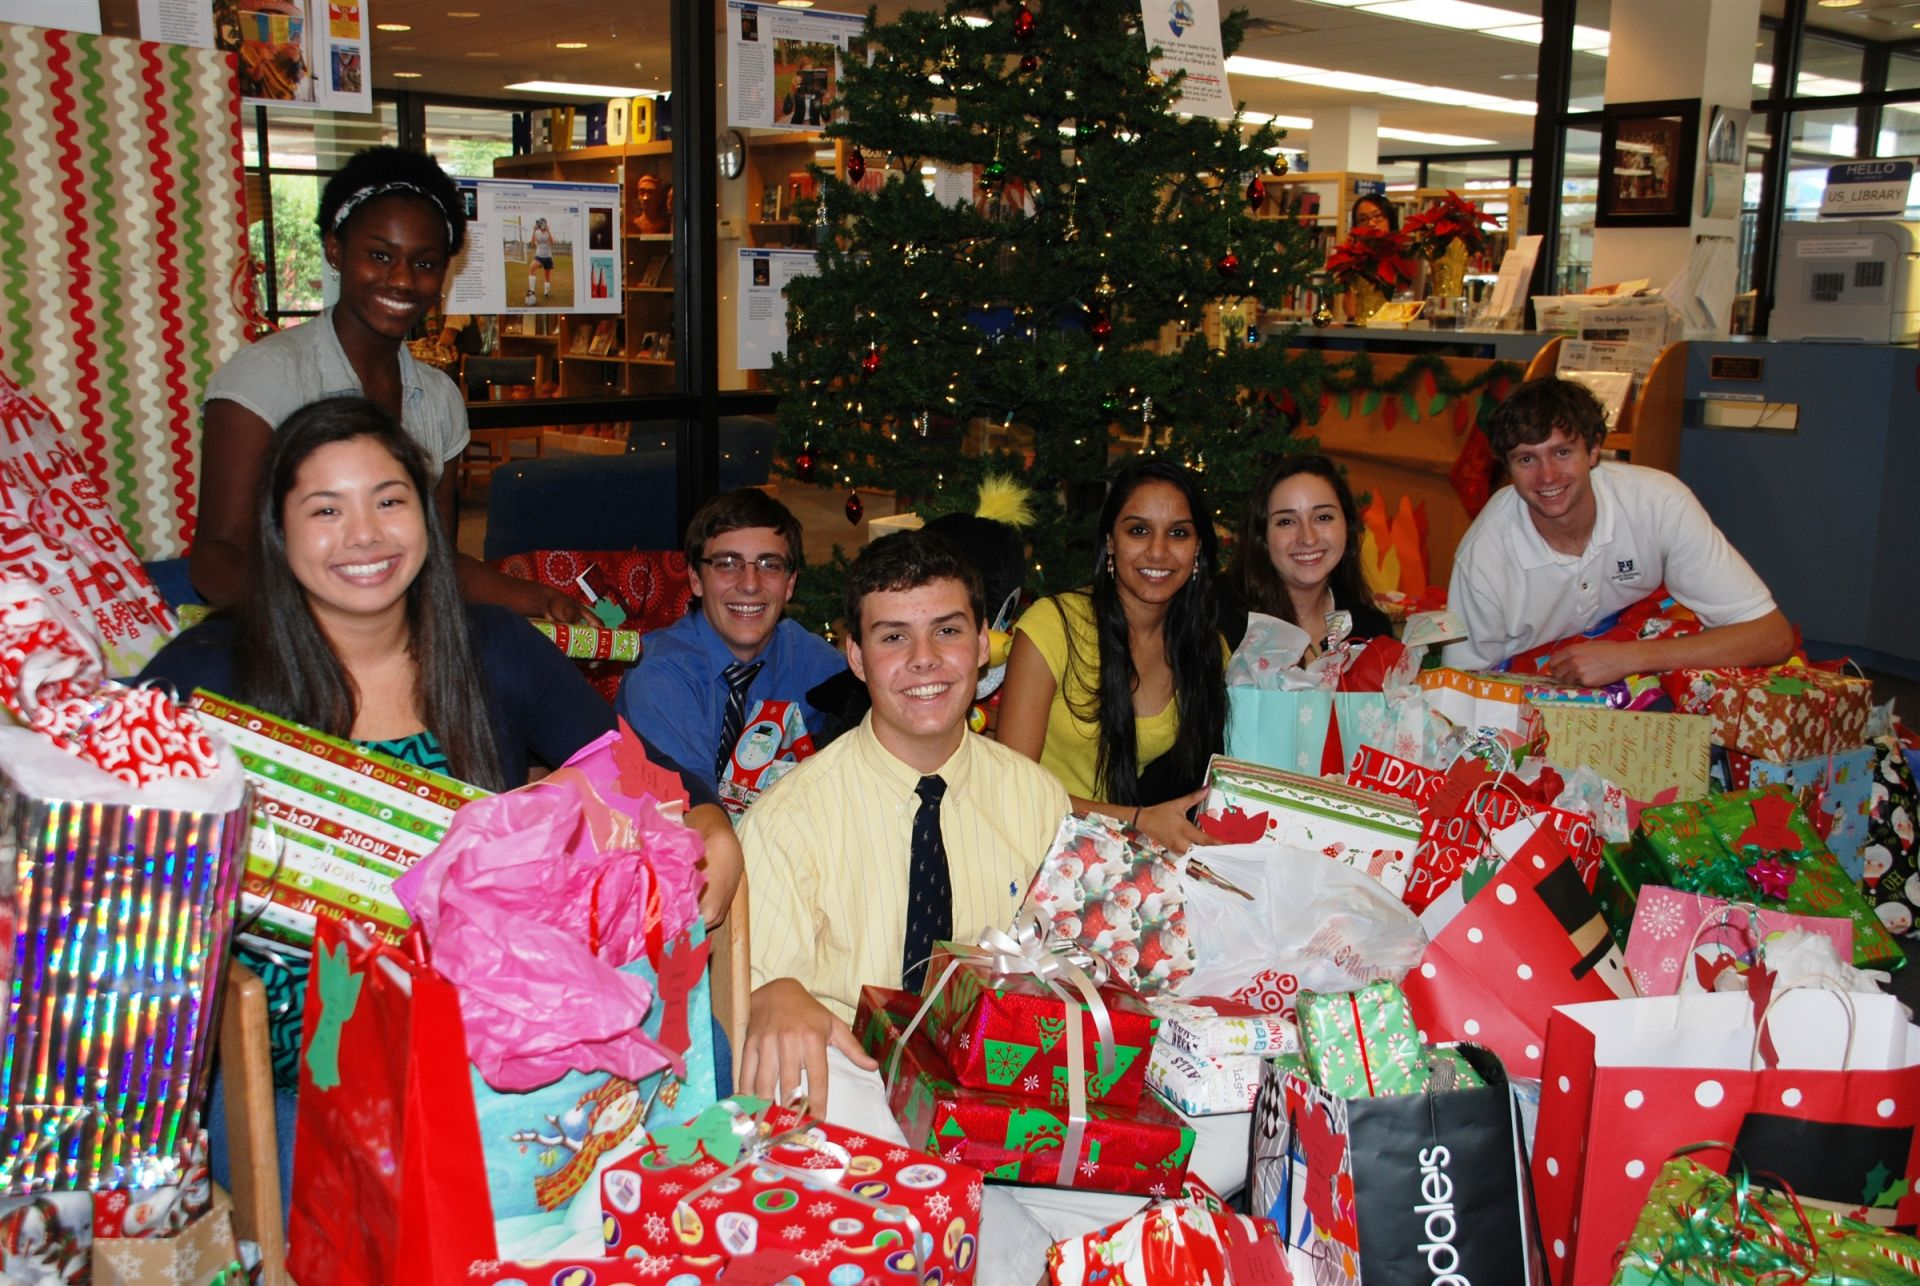 National Honor Society students arranging gifts for children.